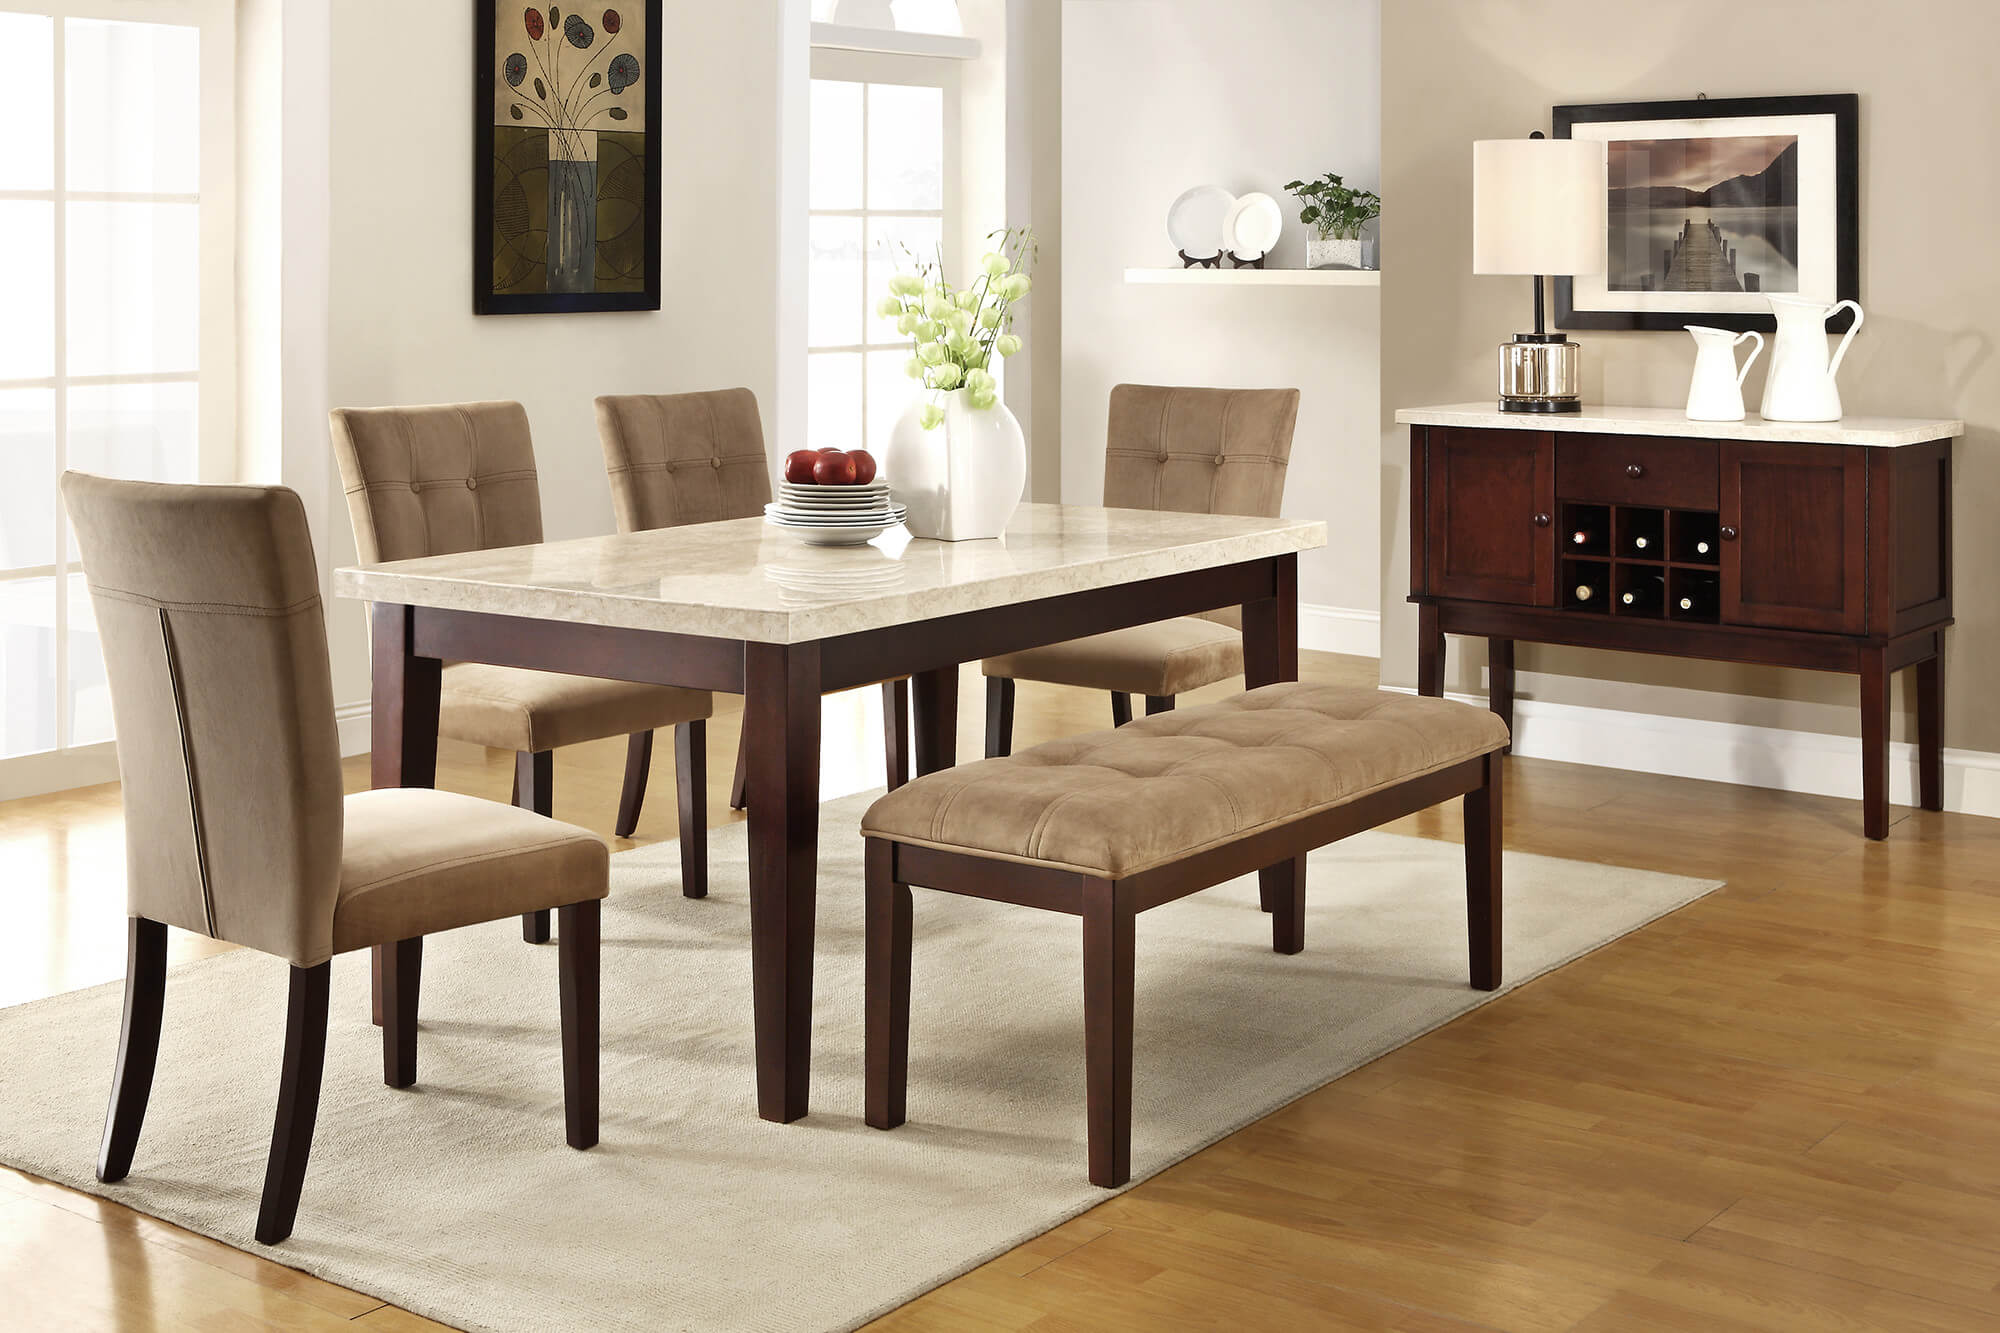 dining room sets bench seating small square kitchen table Here s a 6 piece rubberwood dining set with faux marble table top with tan upholstery for